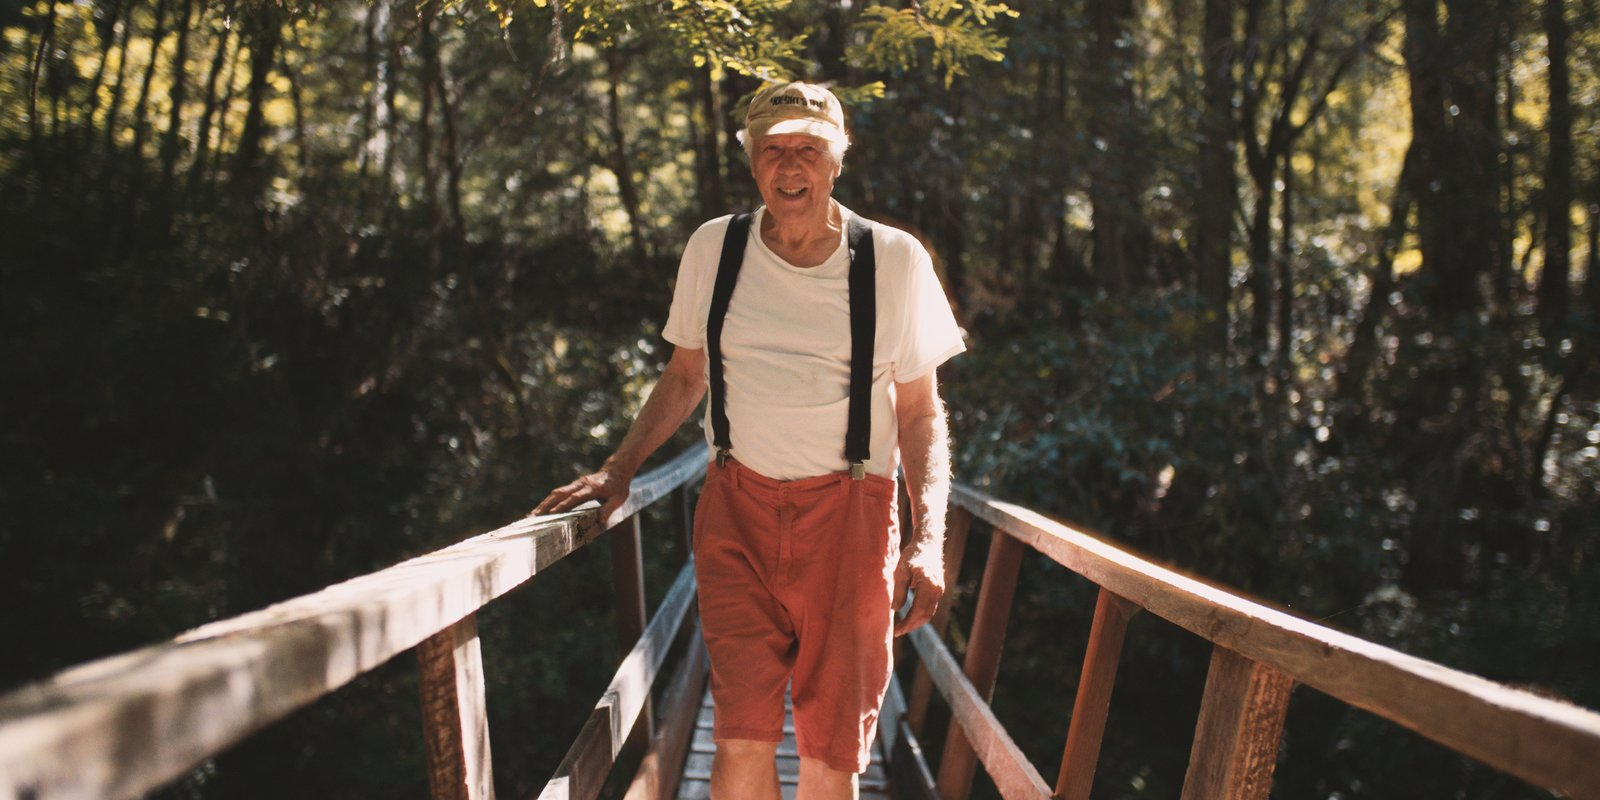 84-year-old Charles Bello left the world of California modernism in the 1960s to embark on his own nature-inspired, architectural journey among hundreds of acres of redwoods in Northern California.  Photo 2 of 10 in The Parabolic Glass House in Northern California Is One Architect's Utopia in the Redwoods